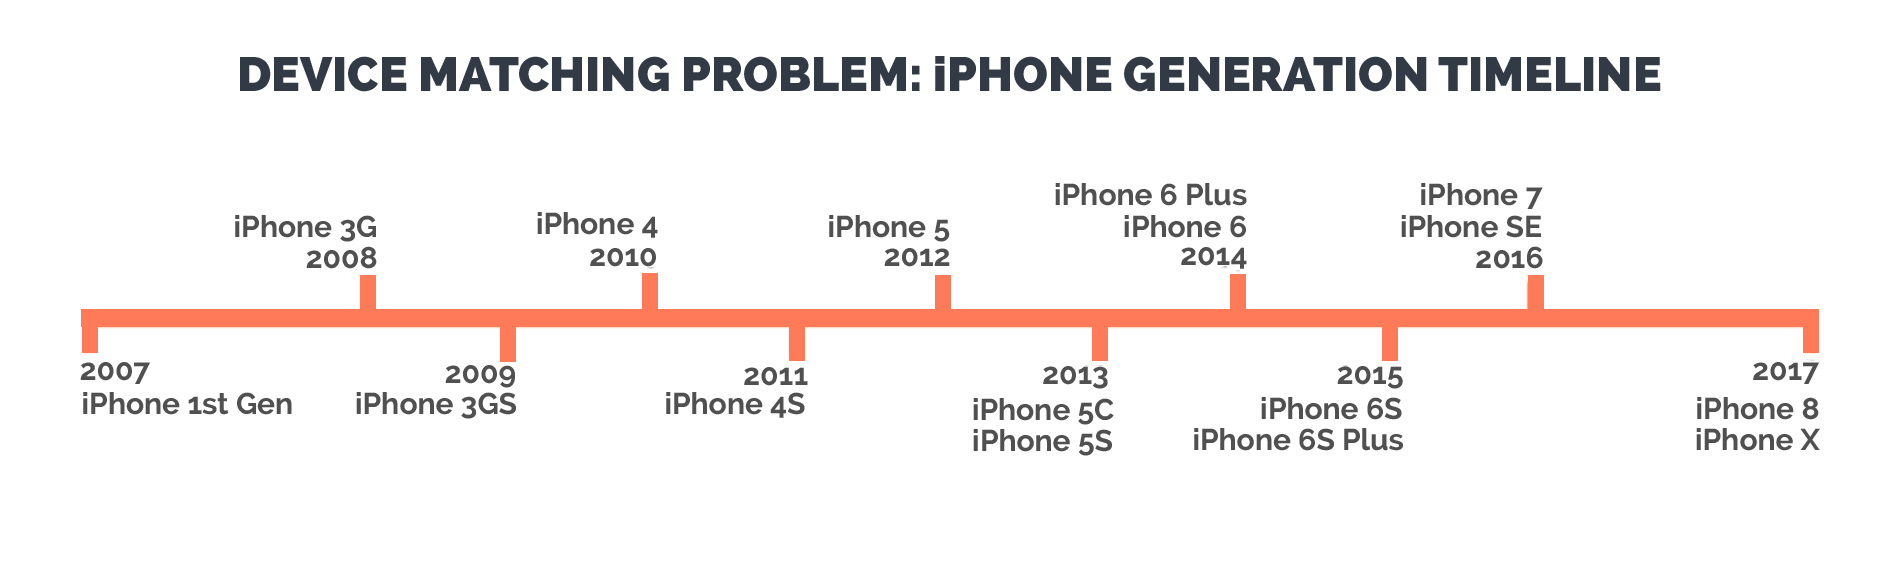 device-matching-problem-iPhone-generation-timeline-graphic-1.png